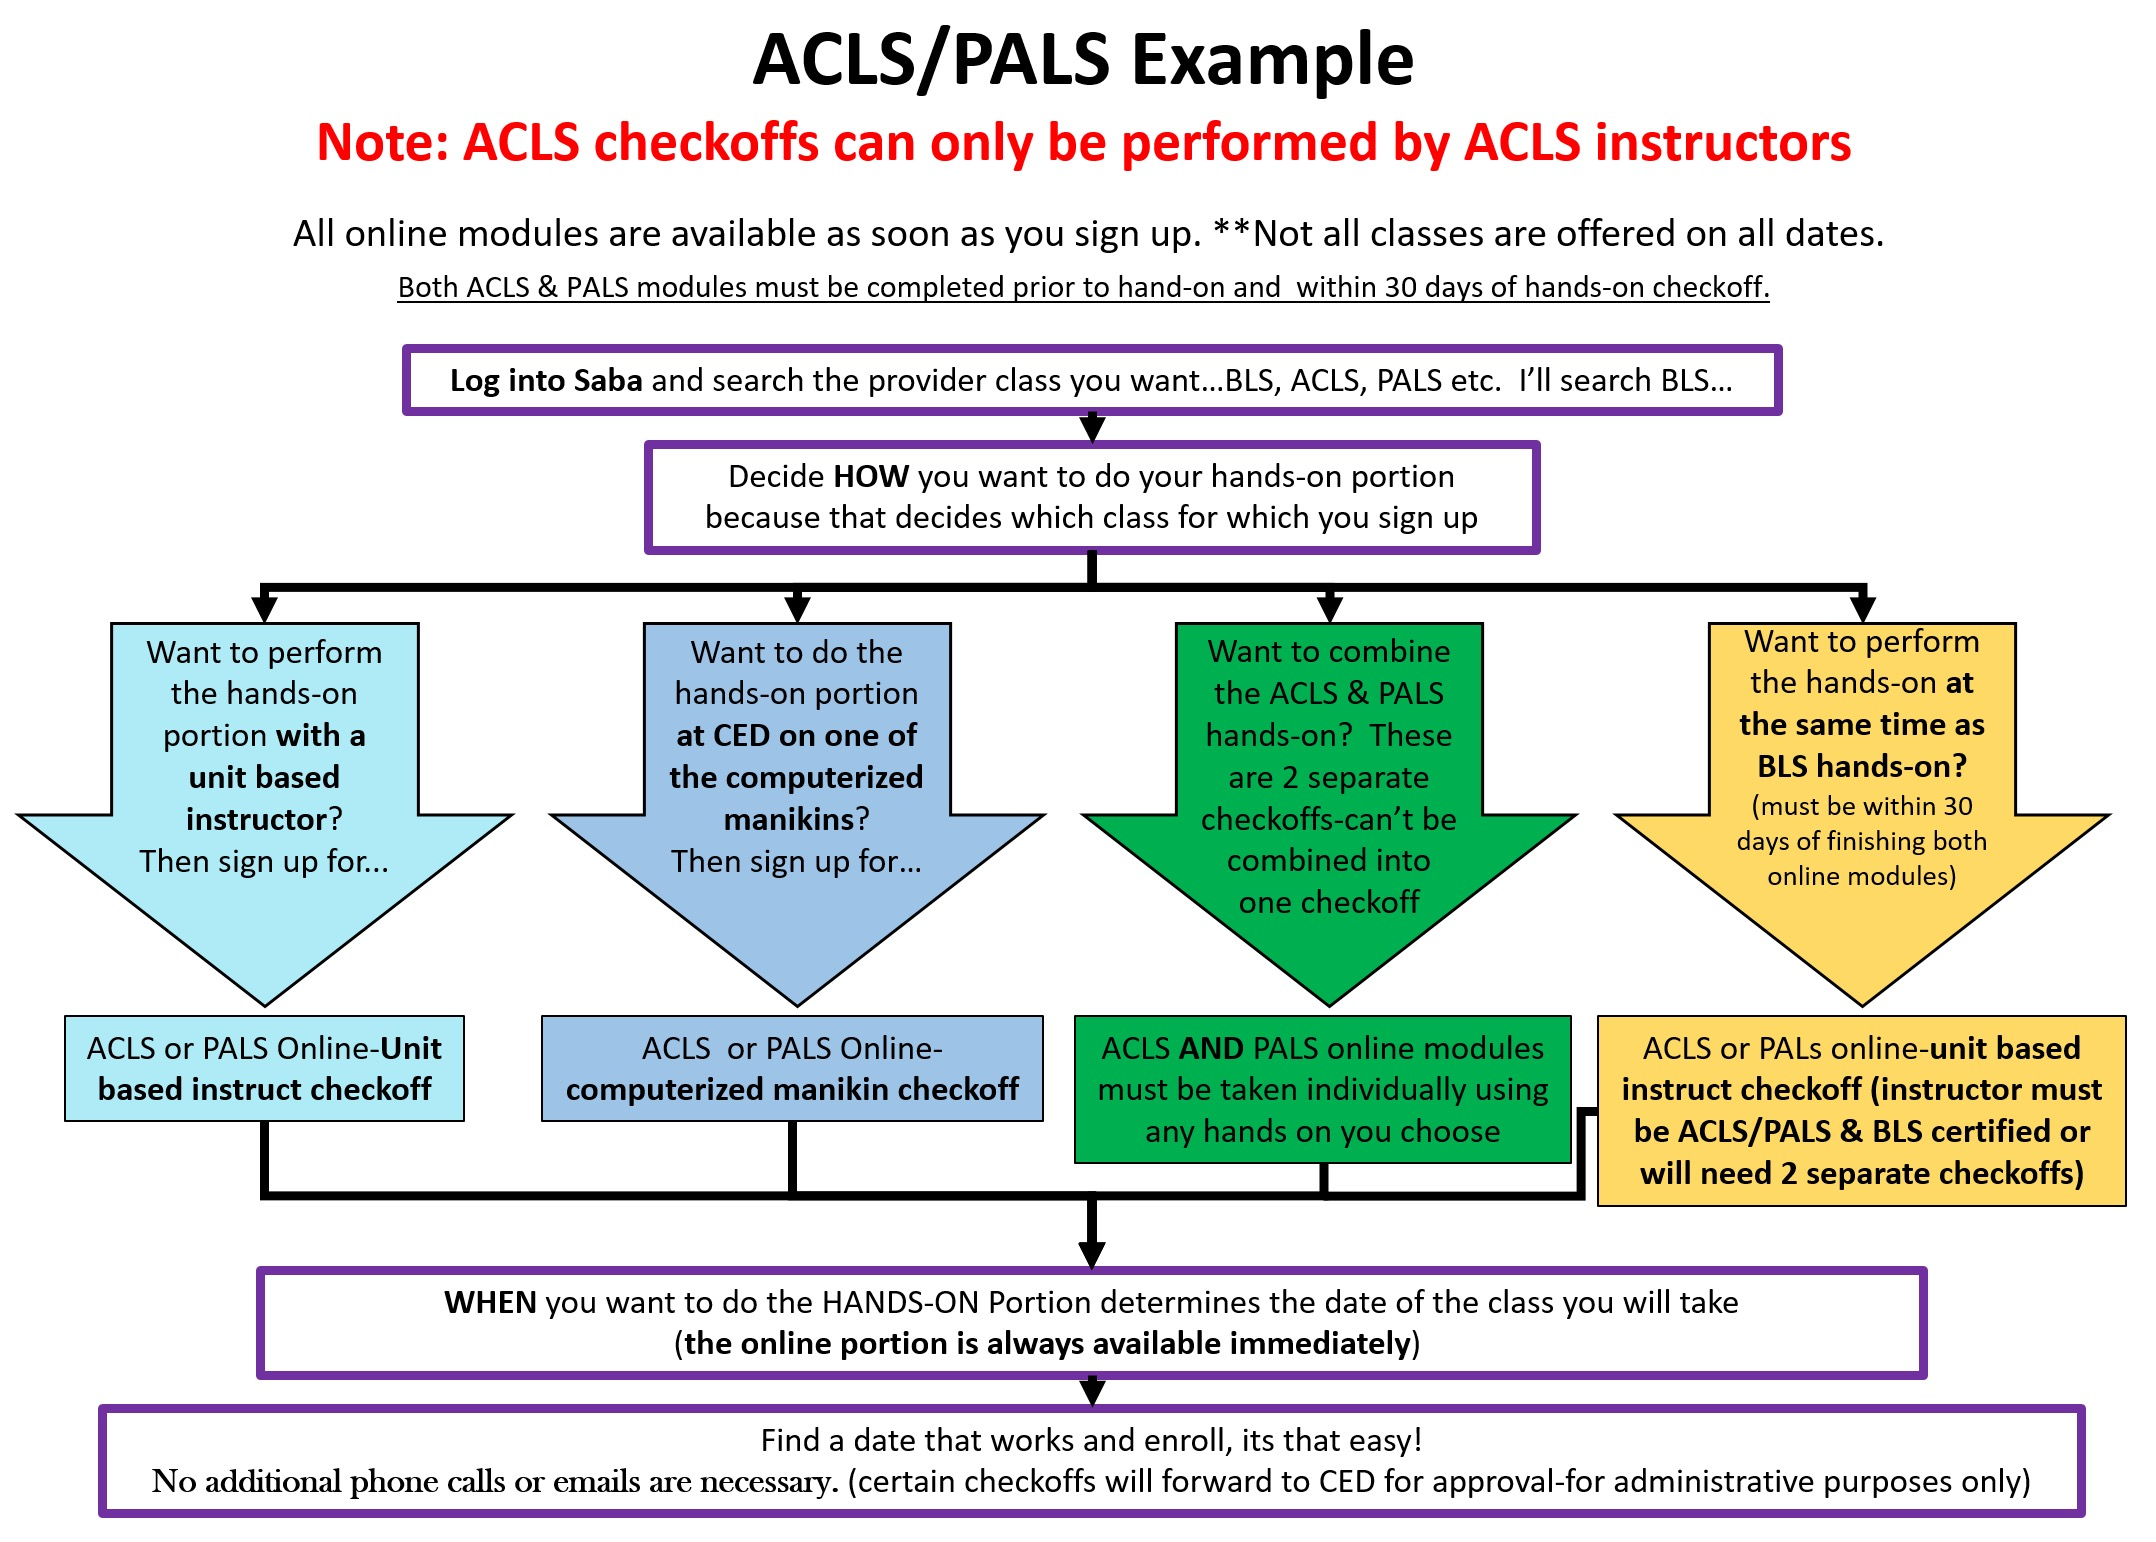 ACLS/PALS Example